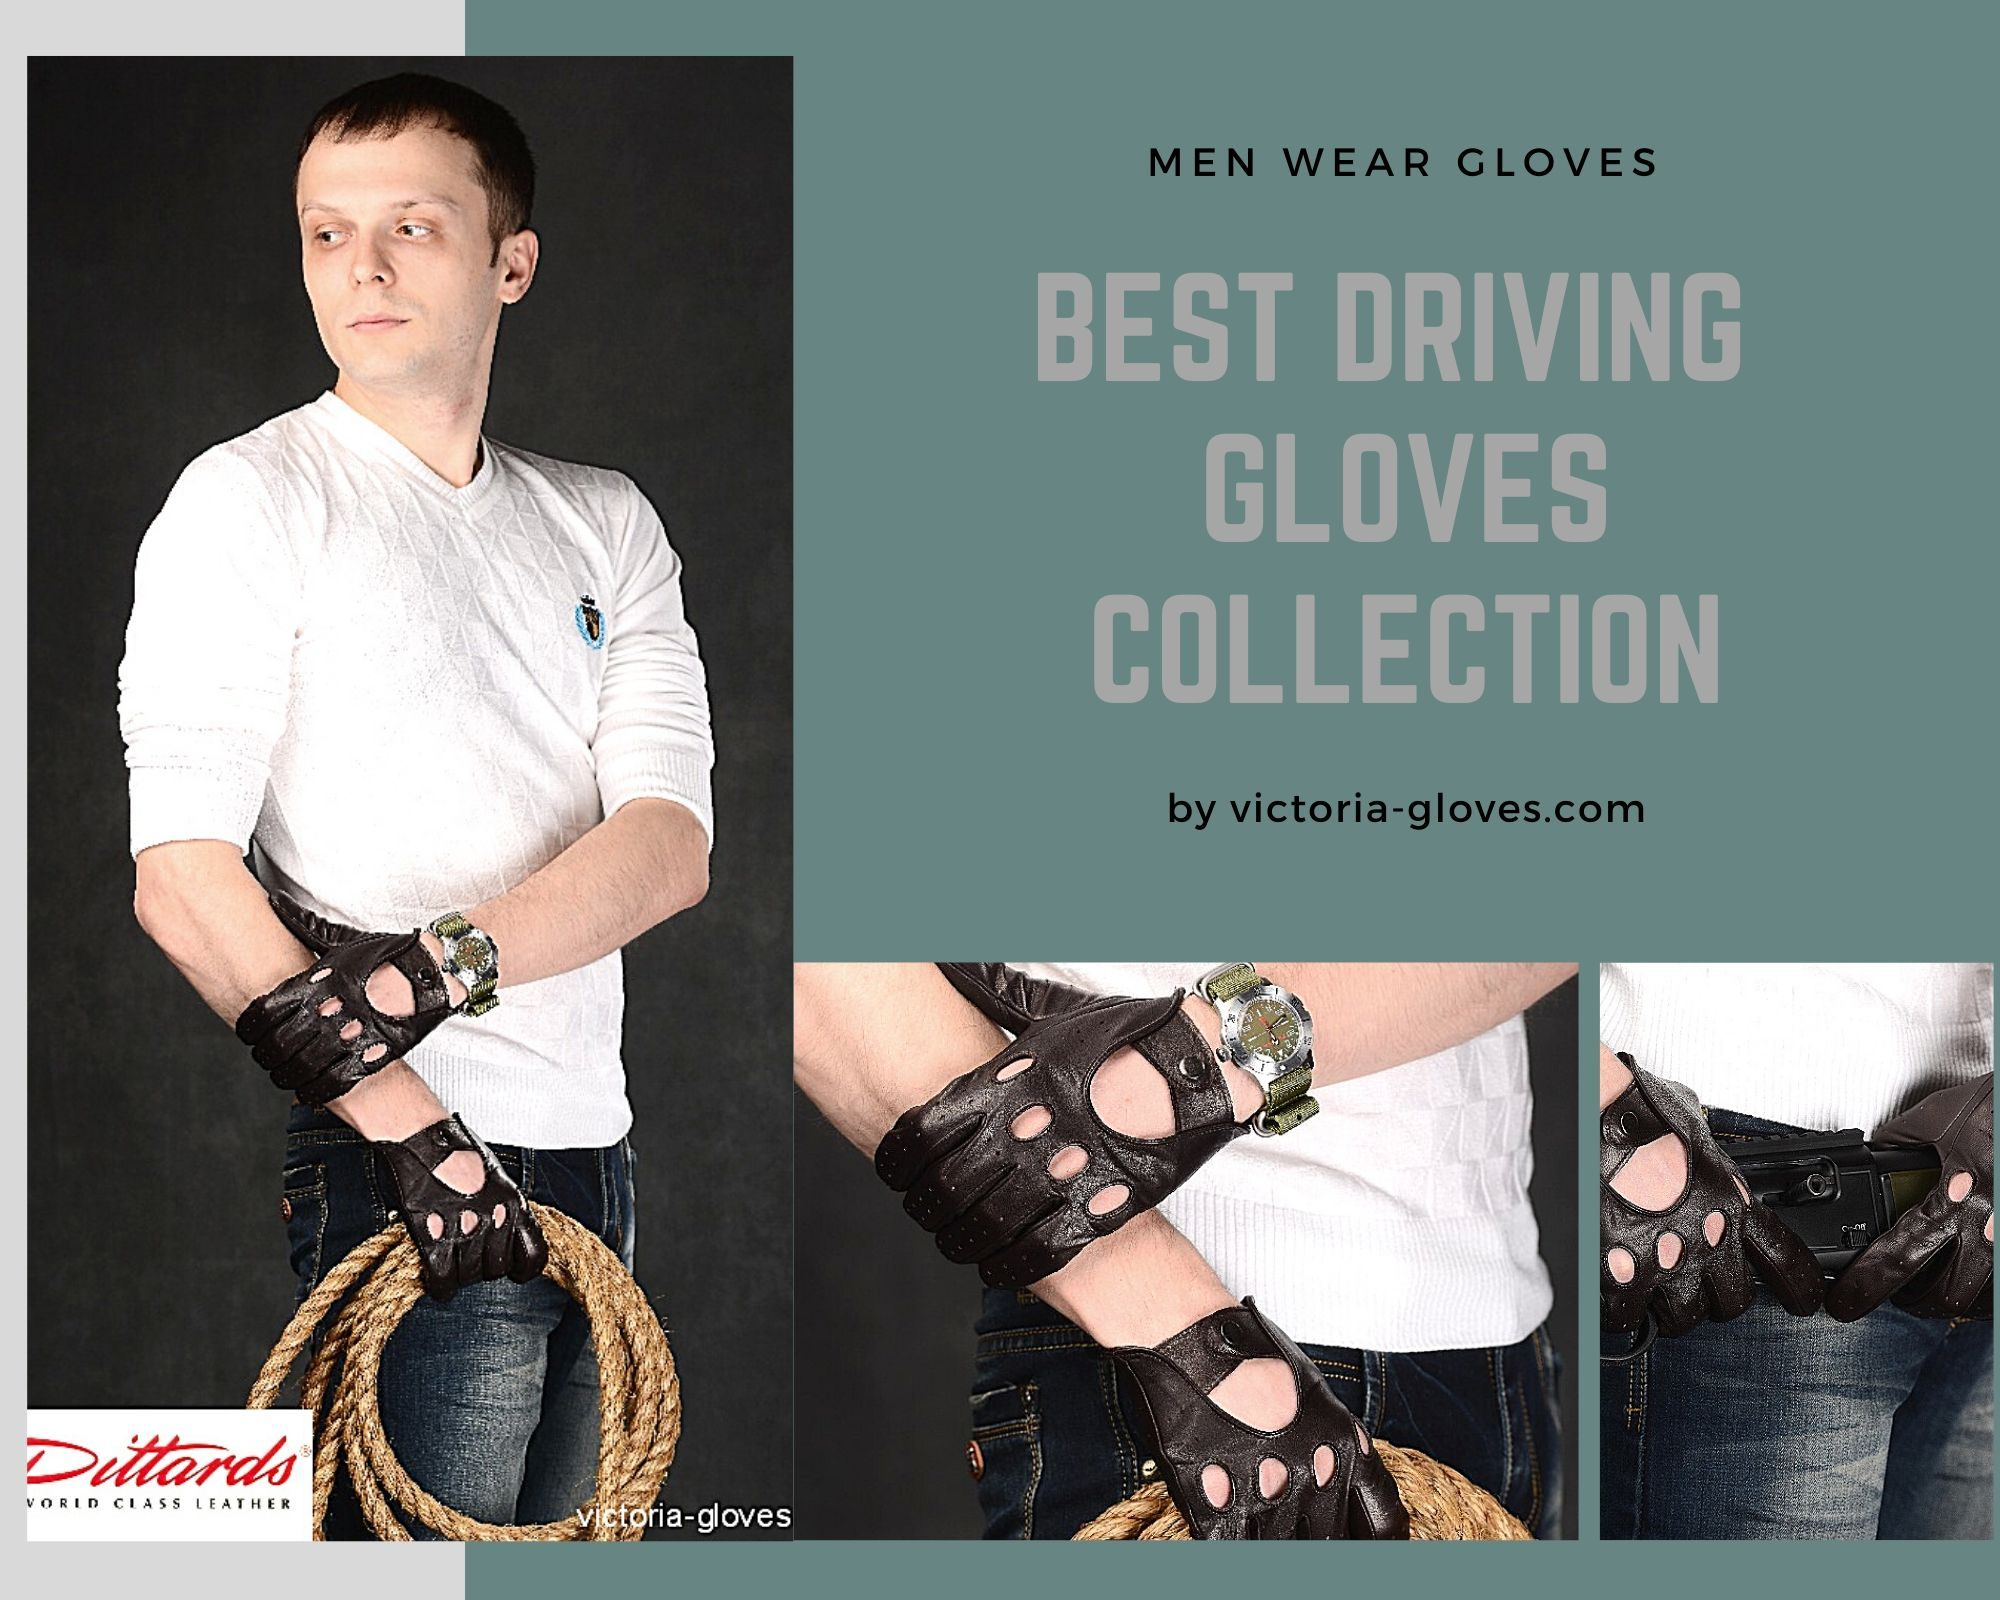 menweargloves Men Wear Leather Gloves/ How and Where - Victoria gloves online: shop gloves in leather